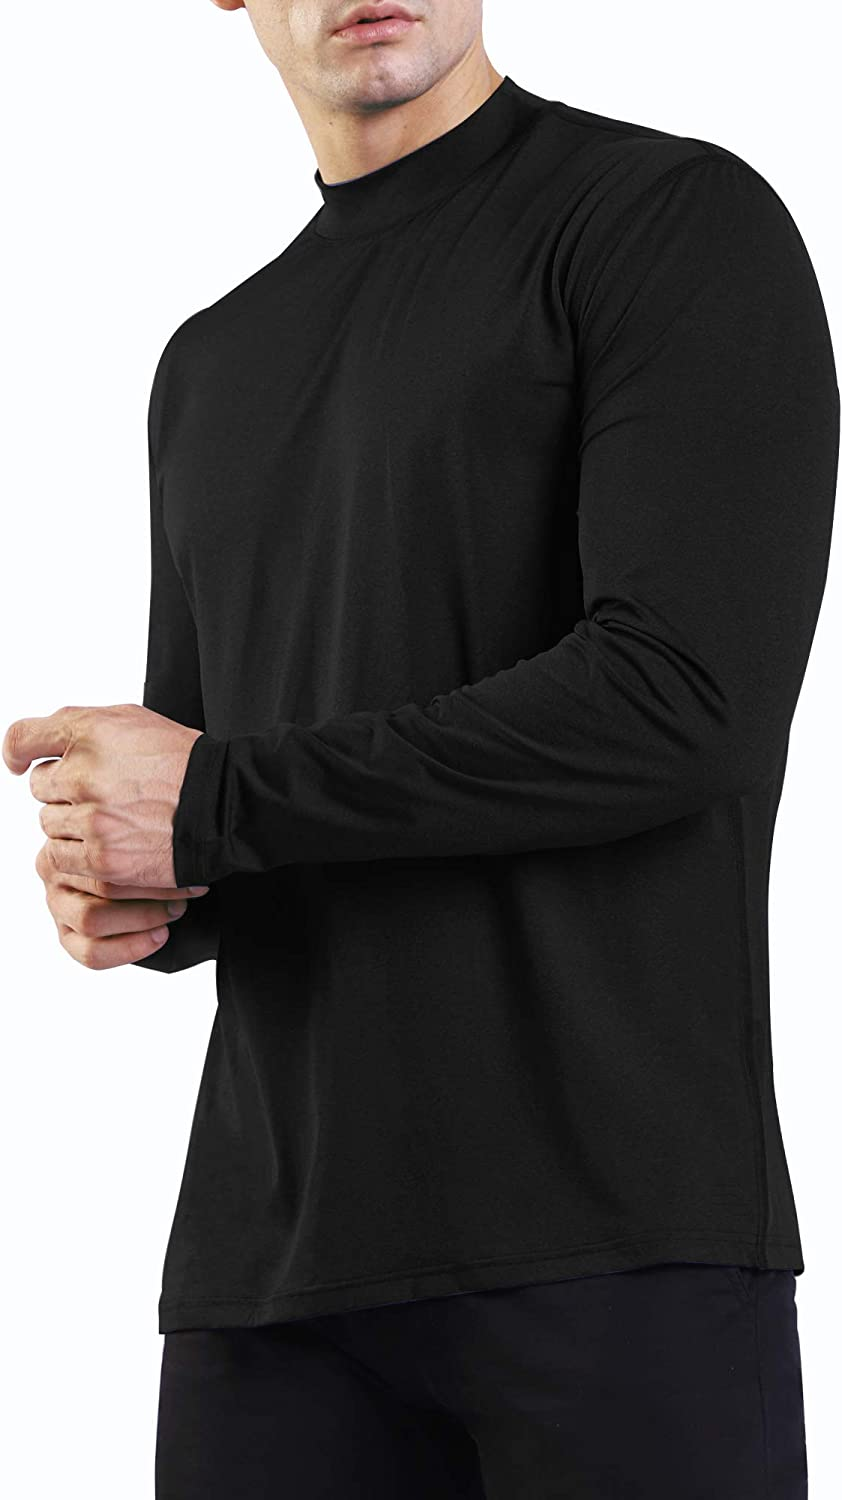 Credence OGEENIER Men's Sales for sale Long Sleeve Athletic T-Shirt Wo Mock Running Neck